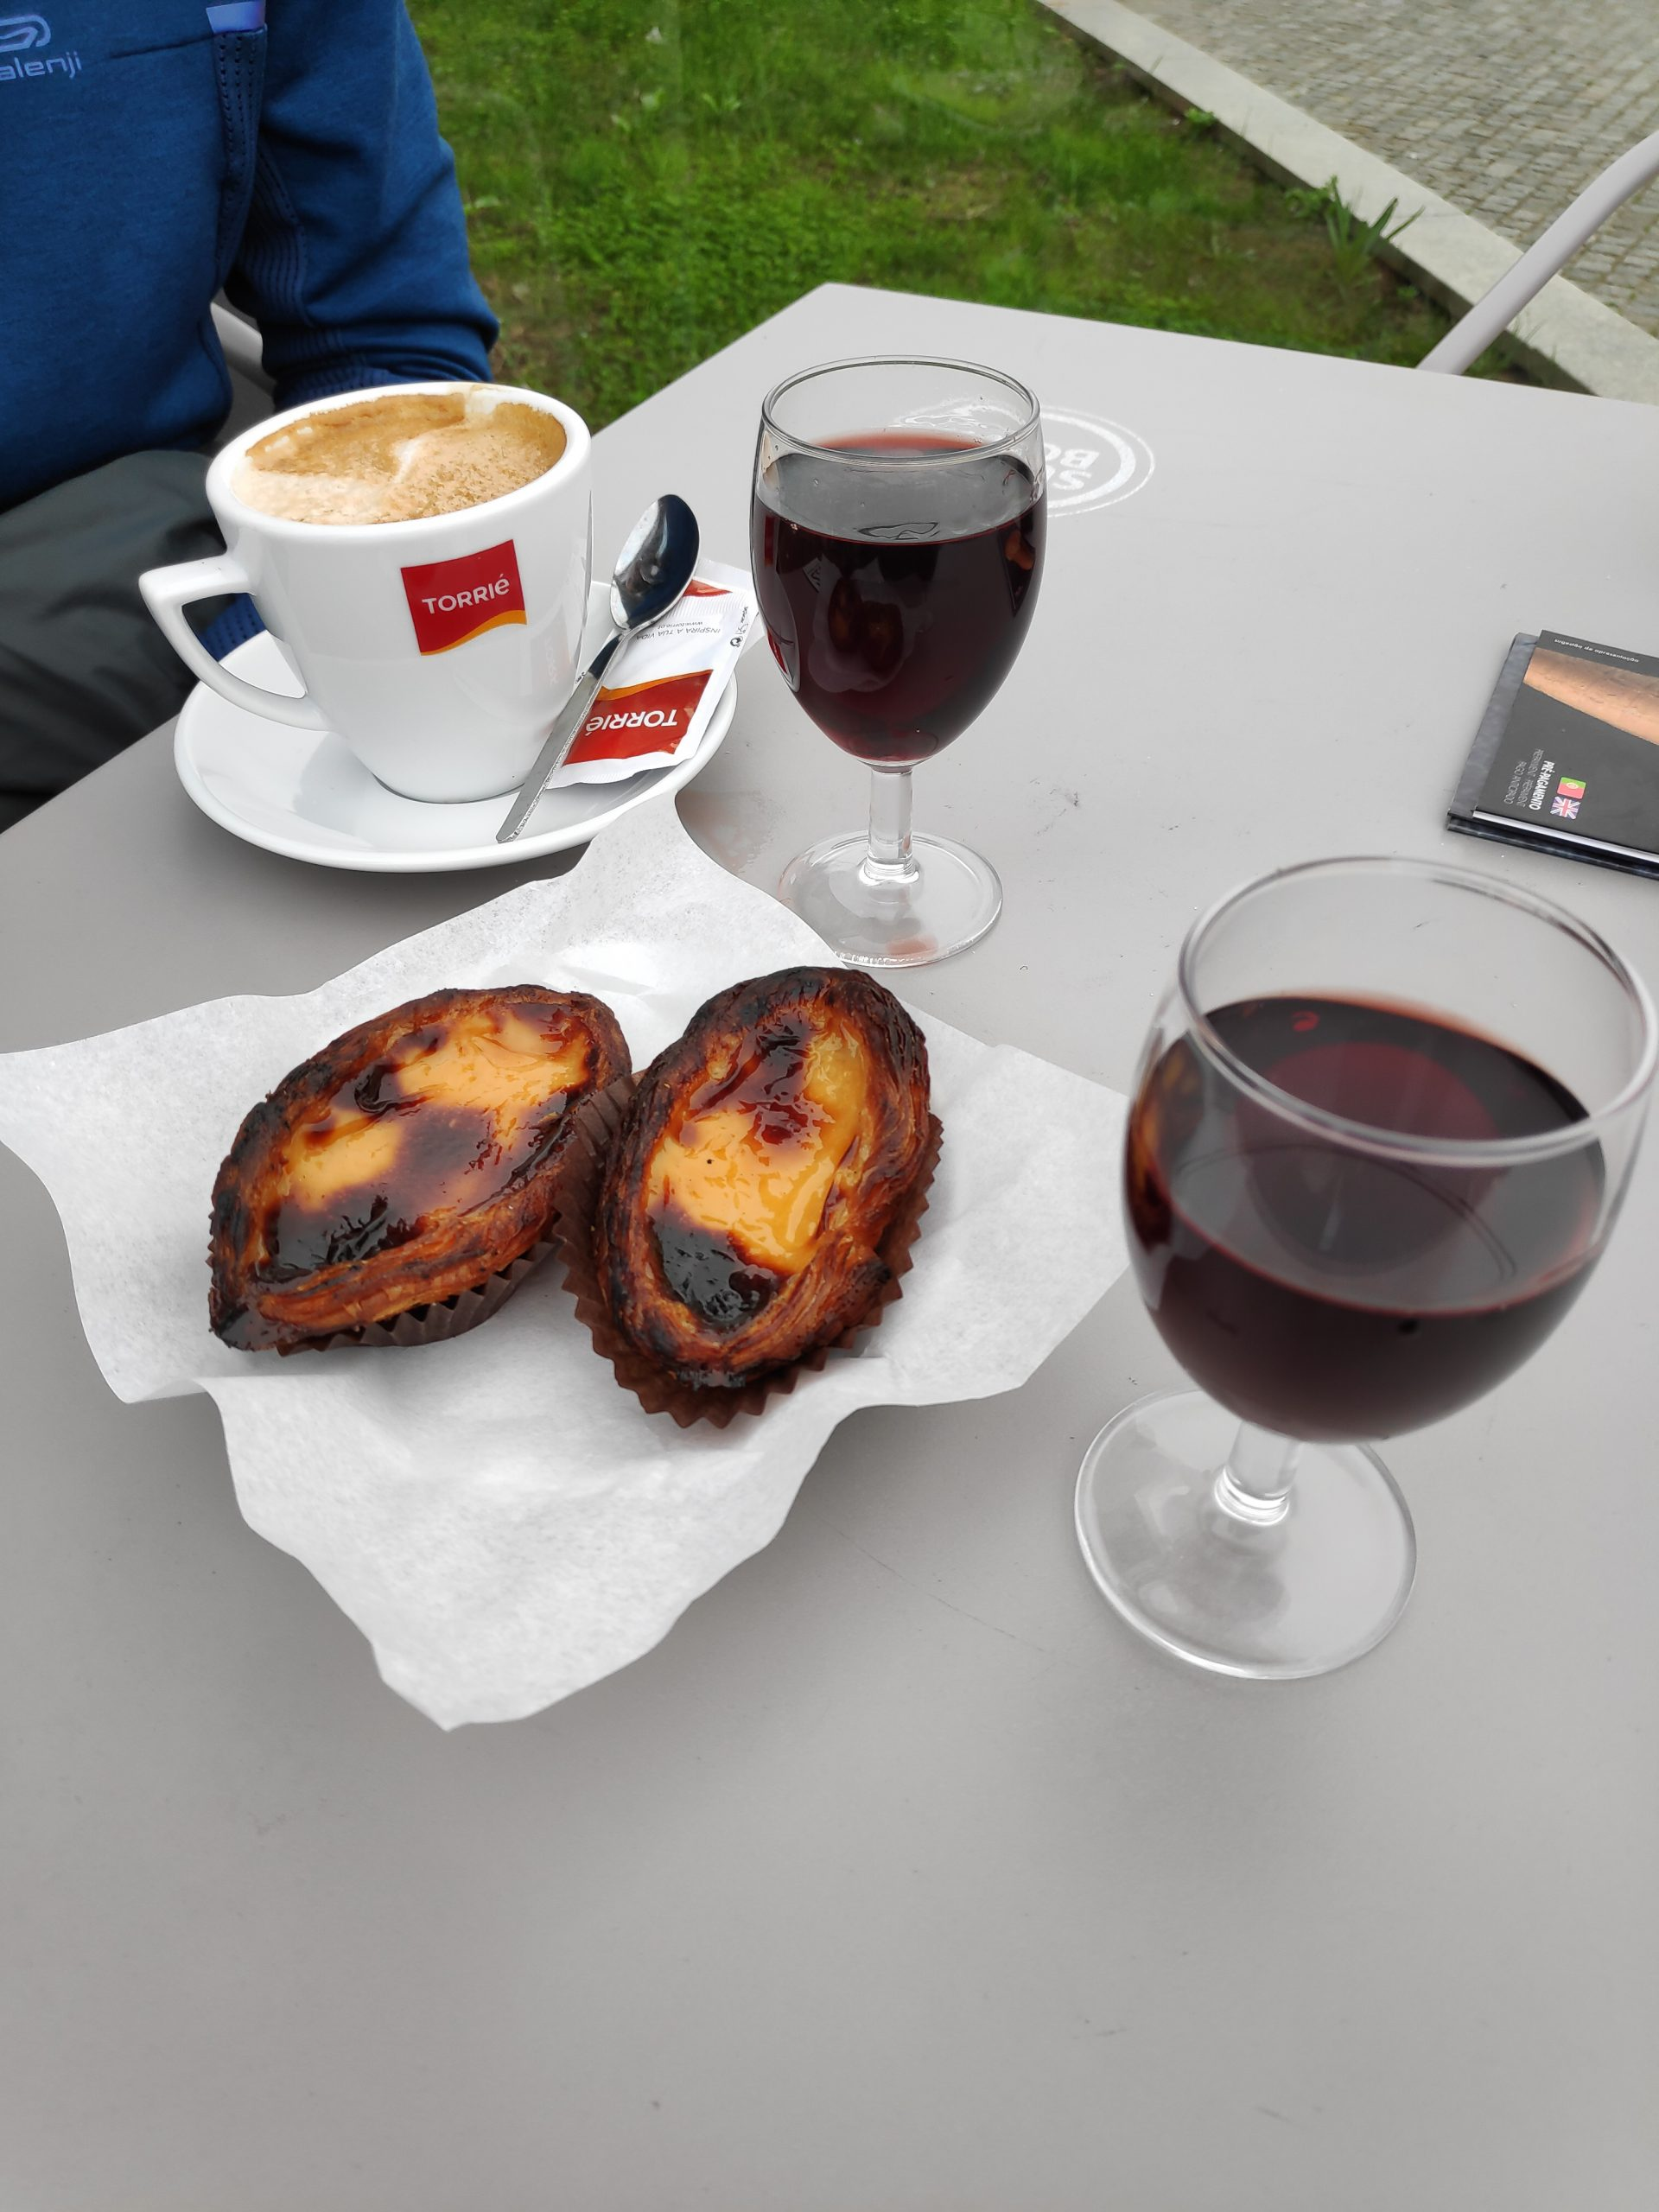 Pastel de nata, you can eat it for breakfast, lunch and dinner. They are really good.